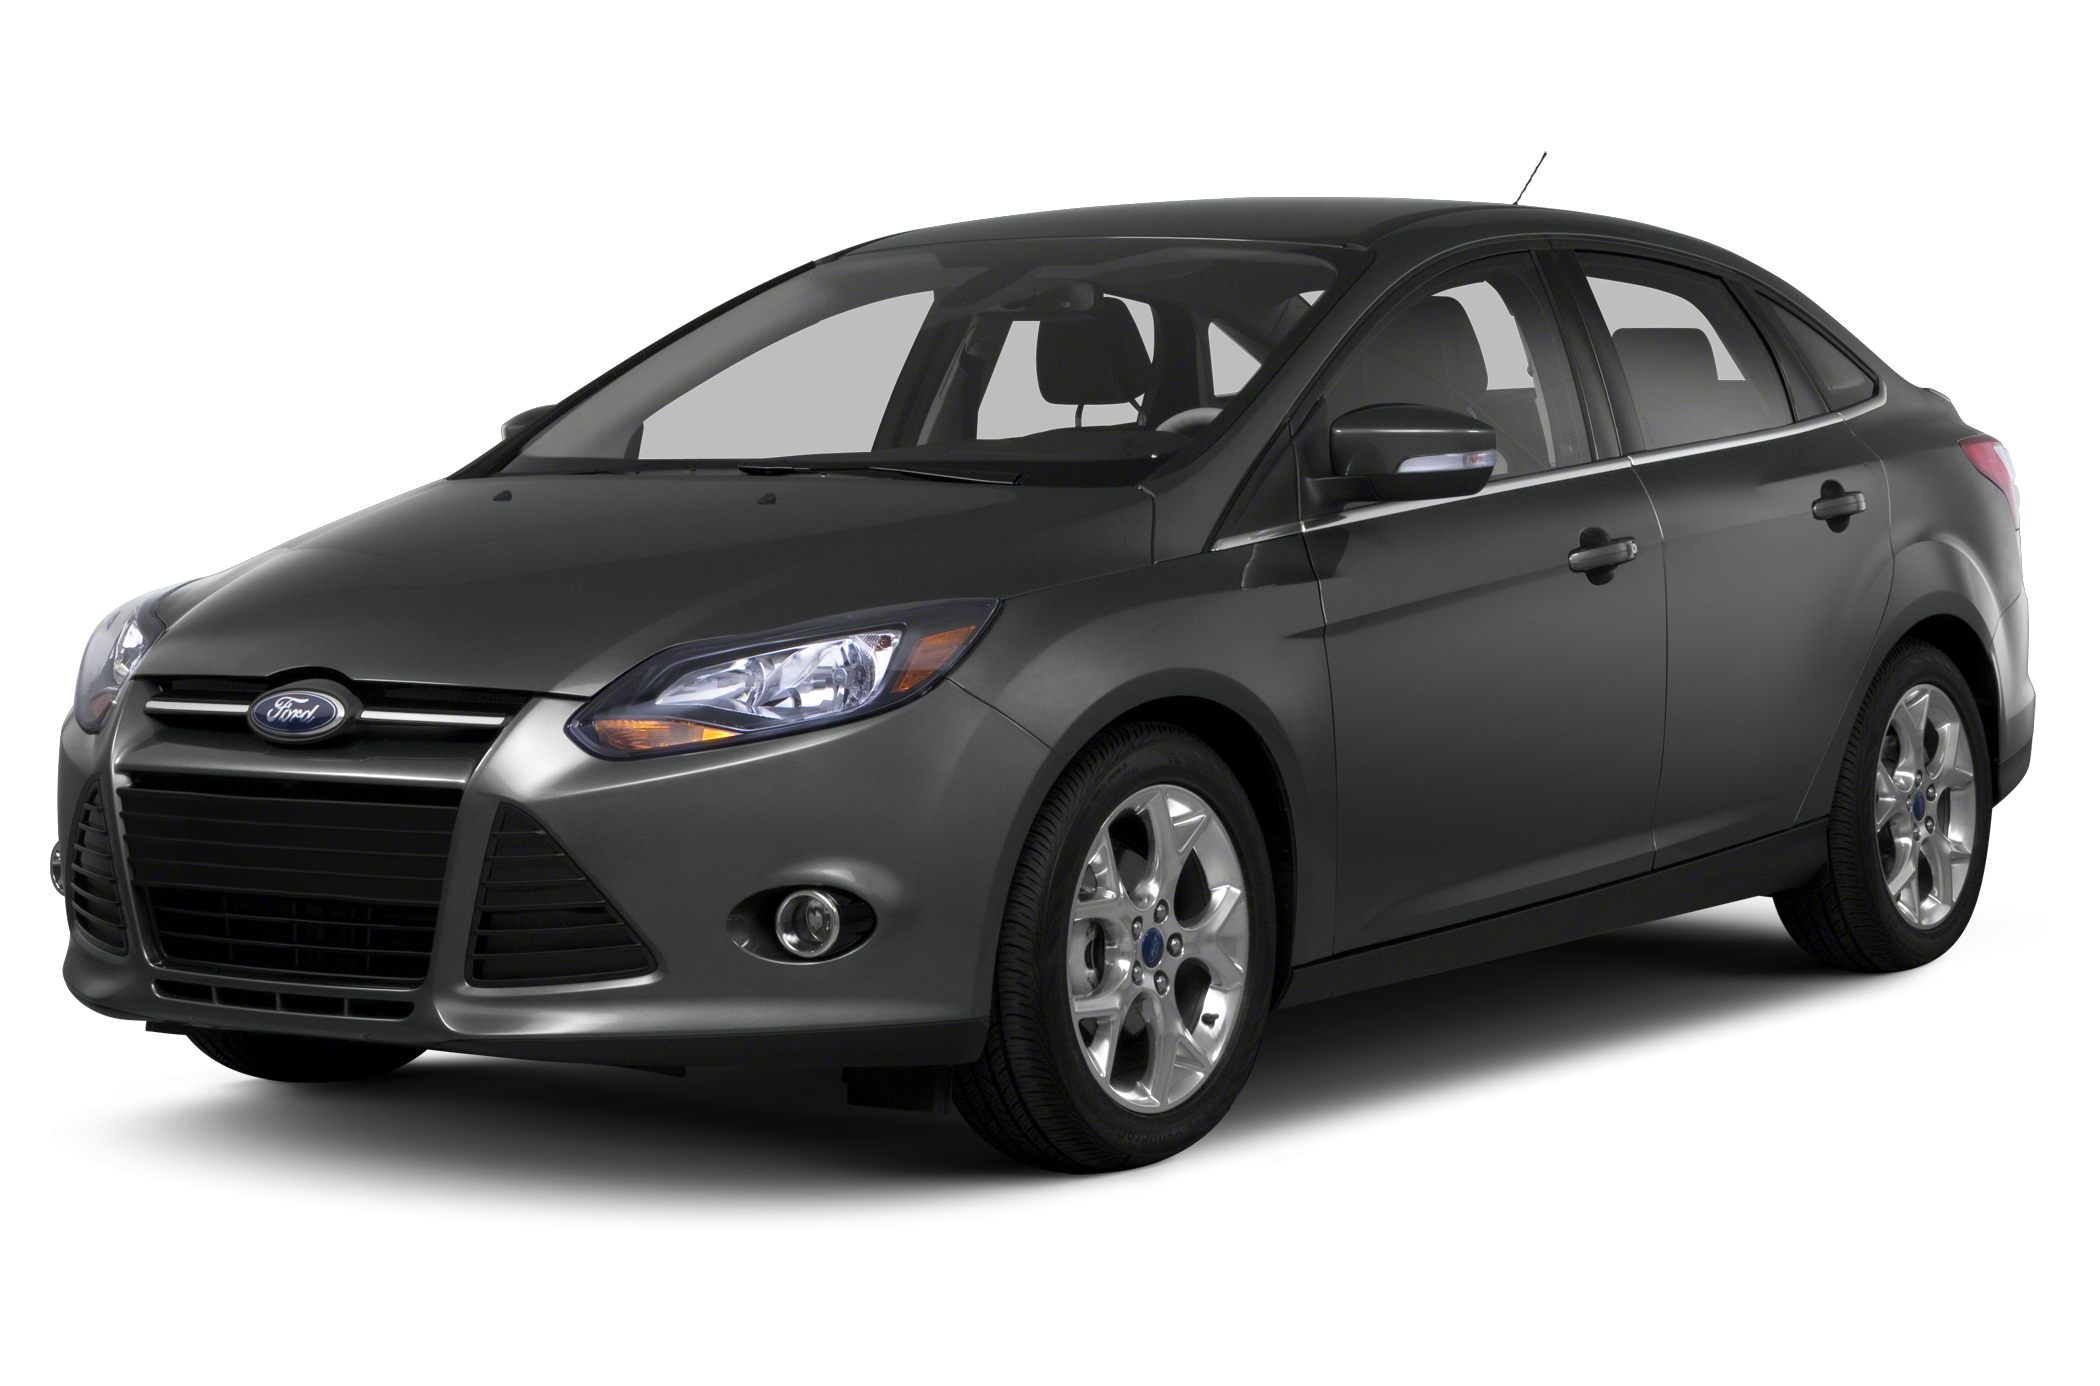 2013 Ford Focus SE Sedan for sale in Summersville for $16,999 with 22,958 miles.